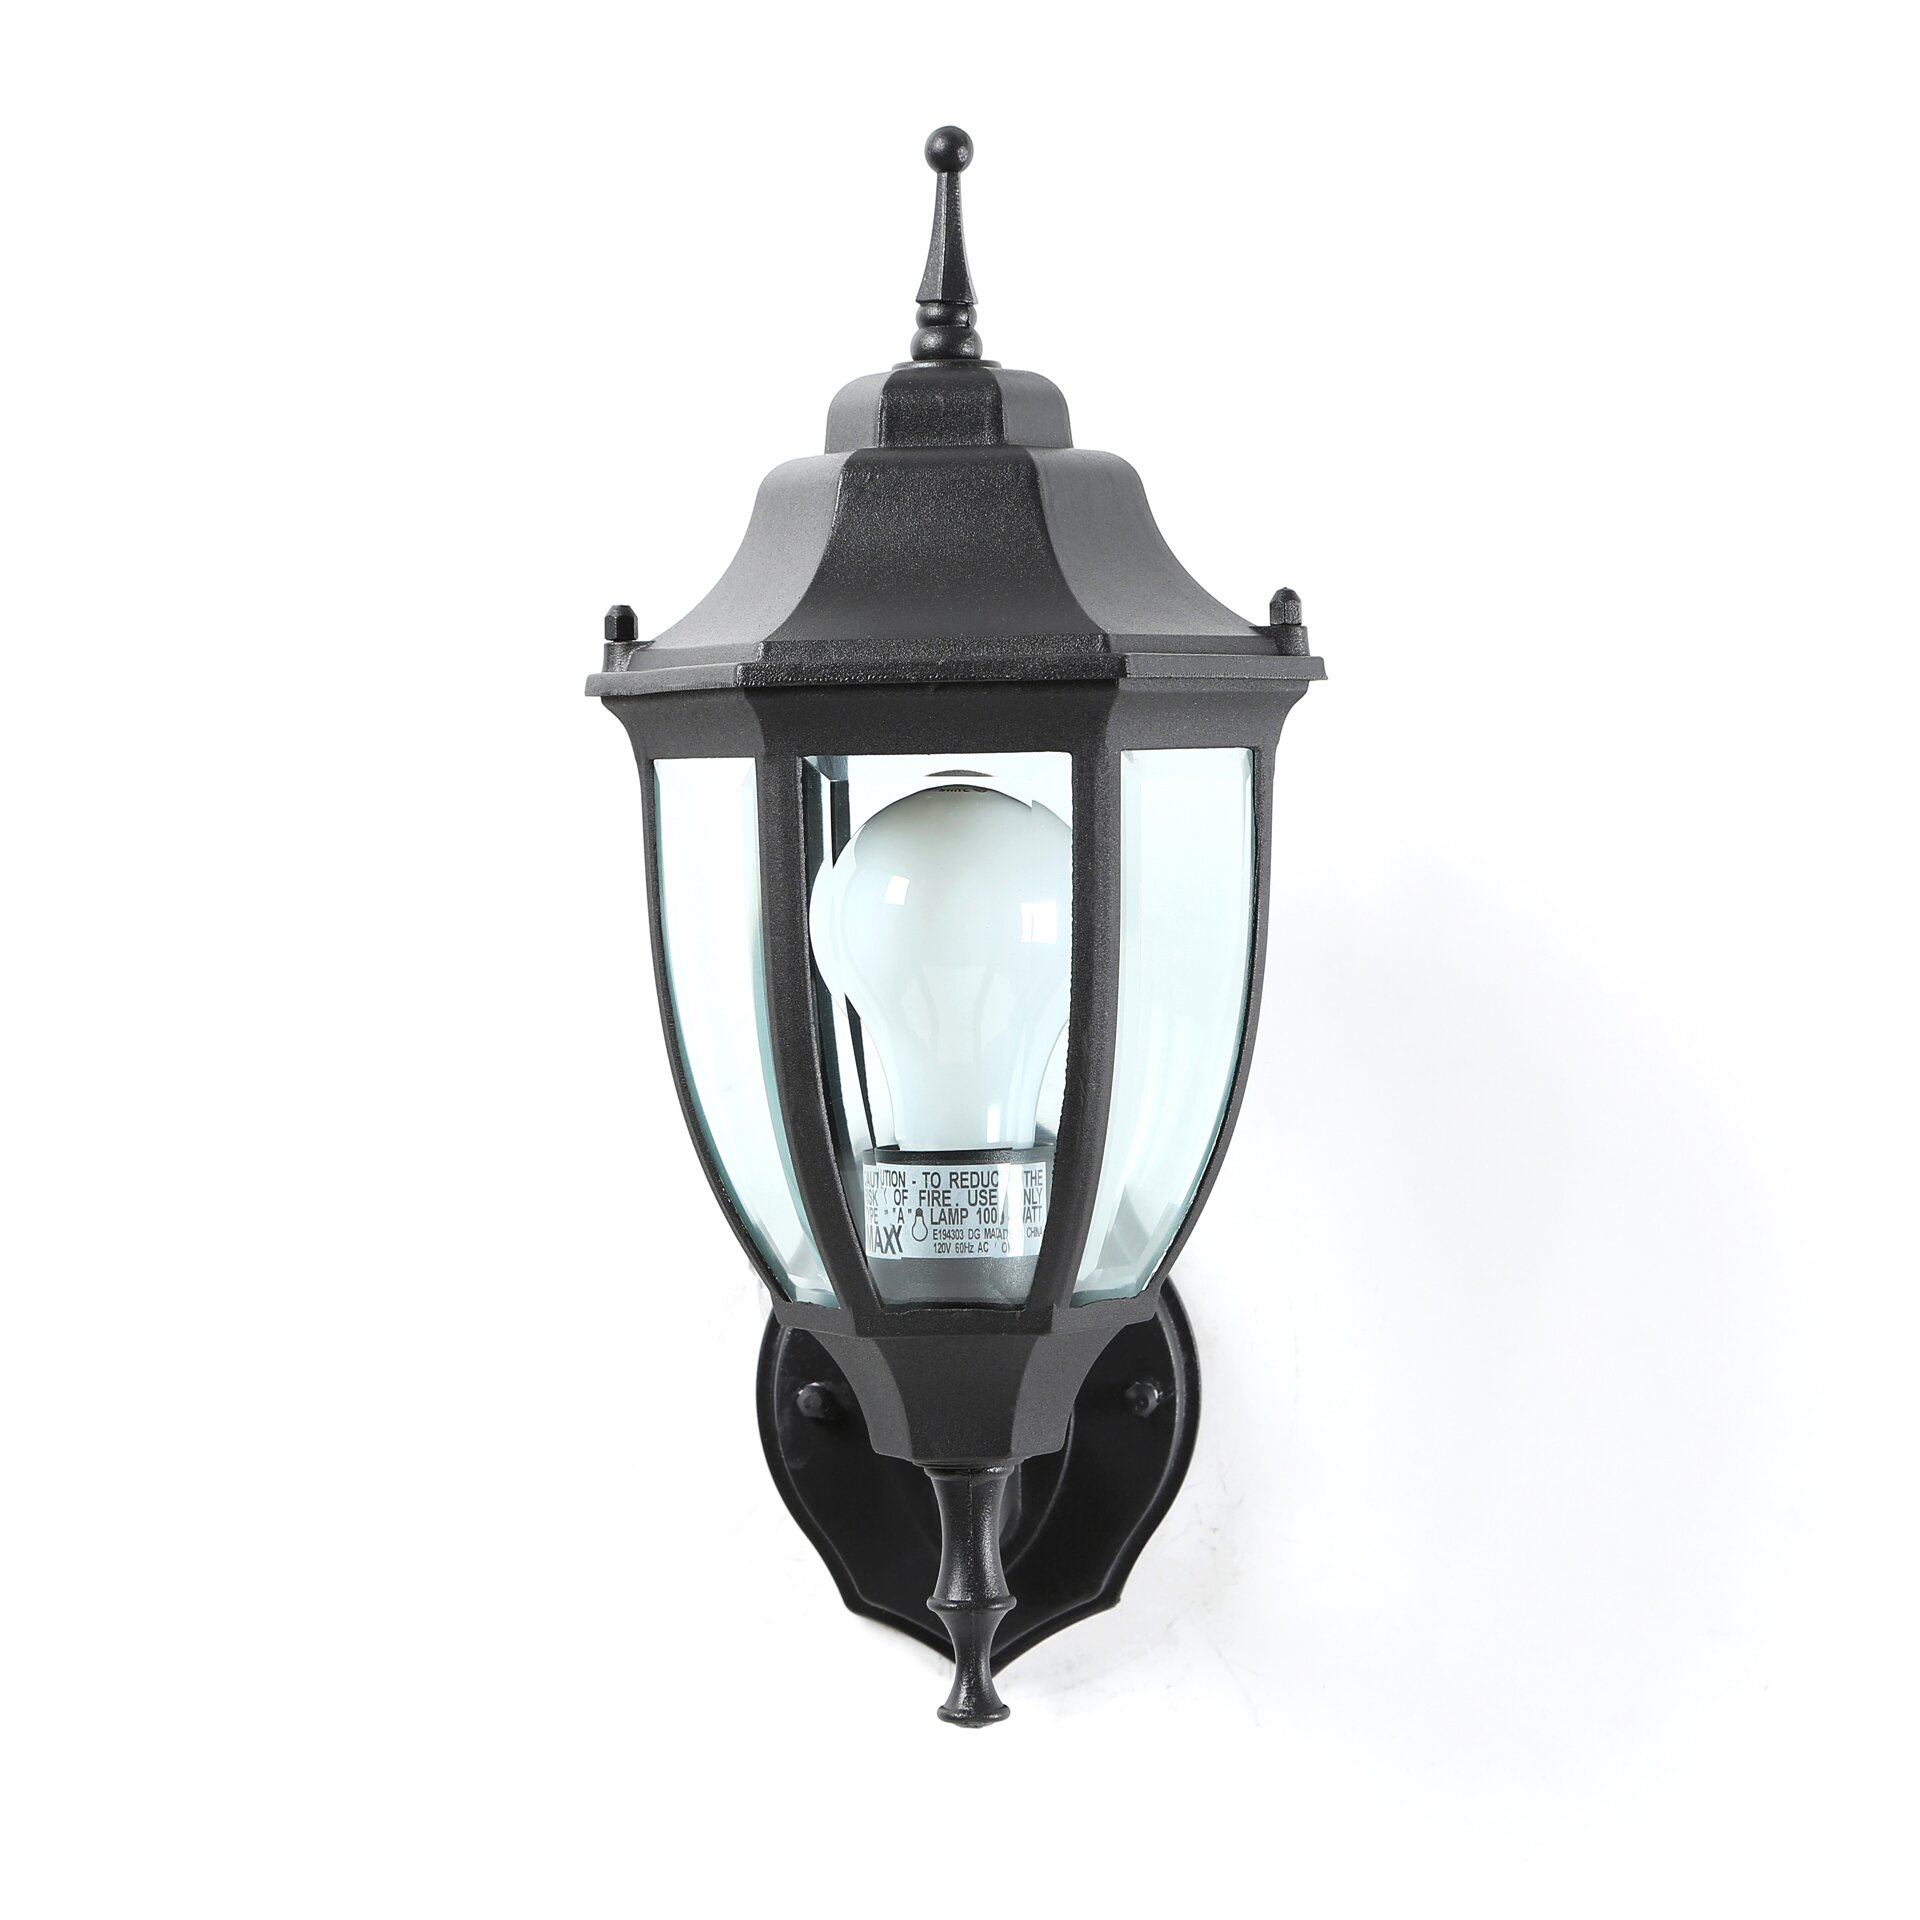 Wayfair Lights: TransGlobe Lighting 1 Light Outdoor Sconce & Reviews